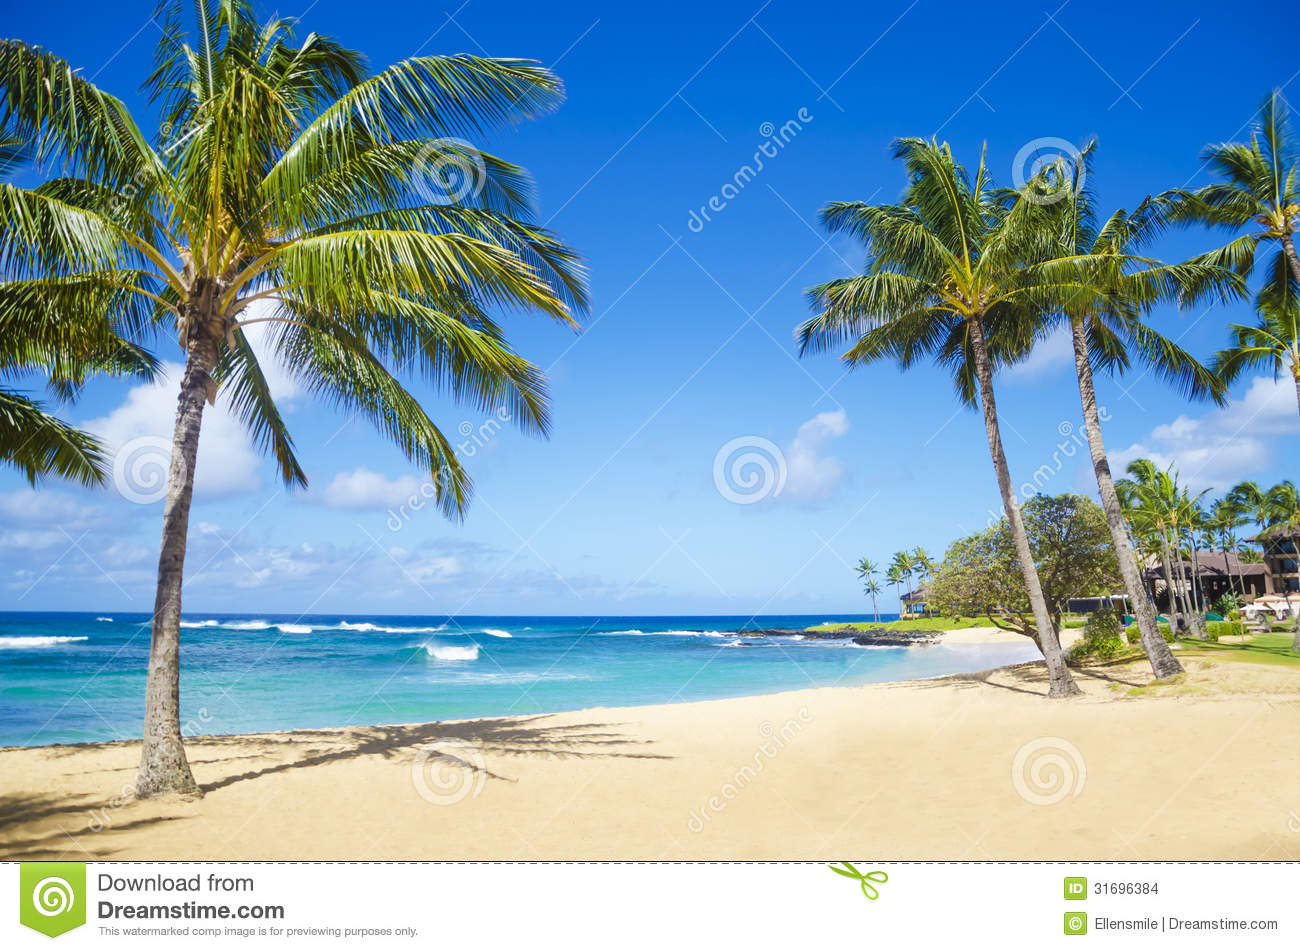 Palm trees on the sandy beach in hawaii stock photo image of palm trees on the sandy beach in hawaii outdoors coconut voltagebd